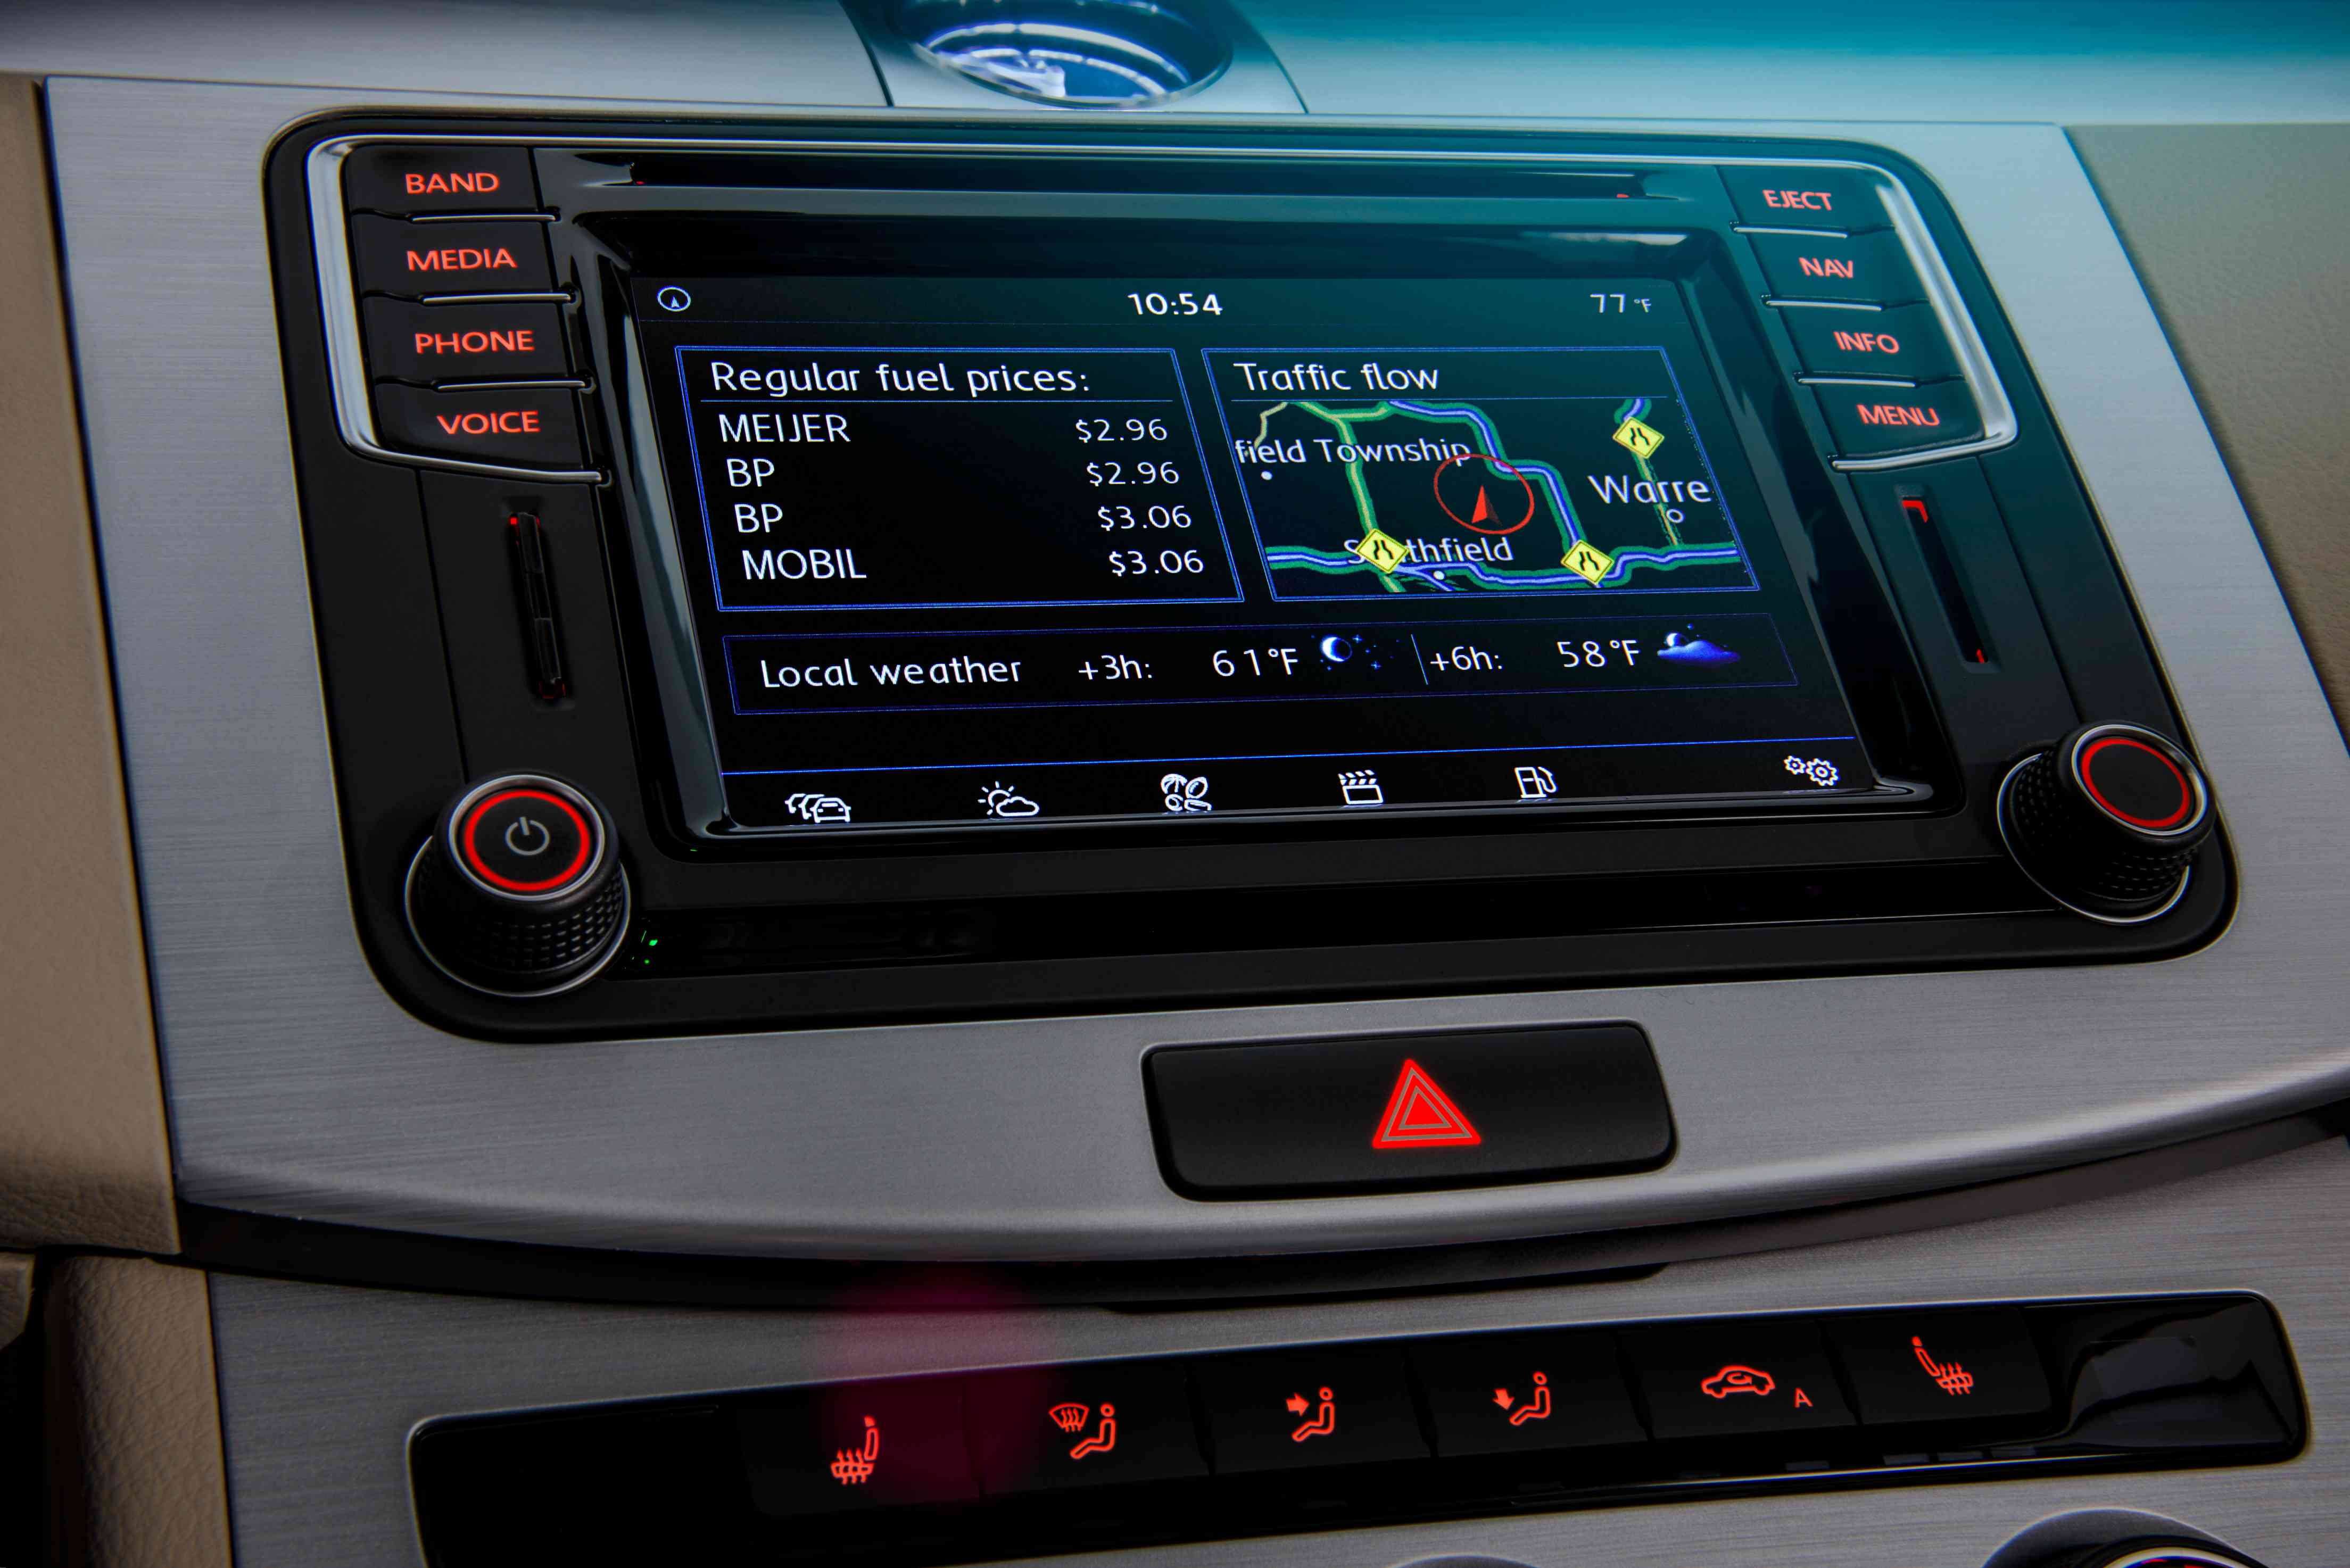 Volkswagen Travel Link with integrated Sirius radio.